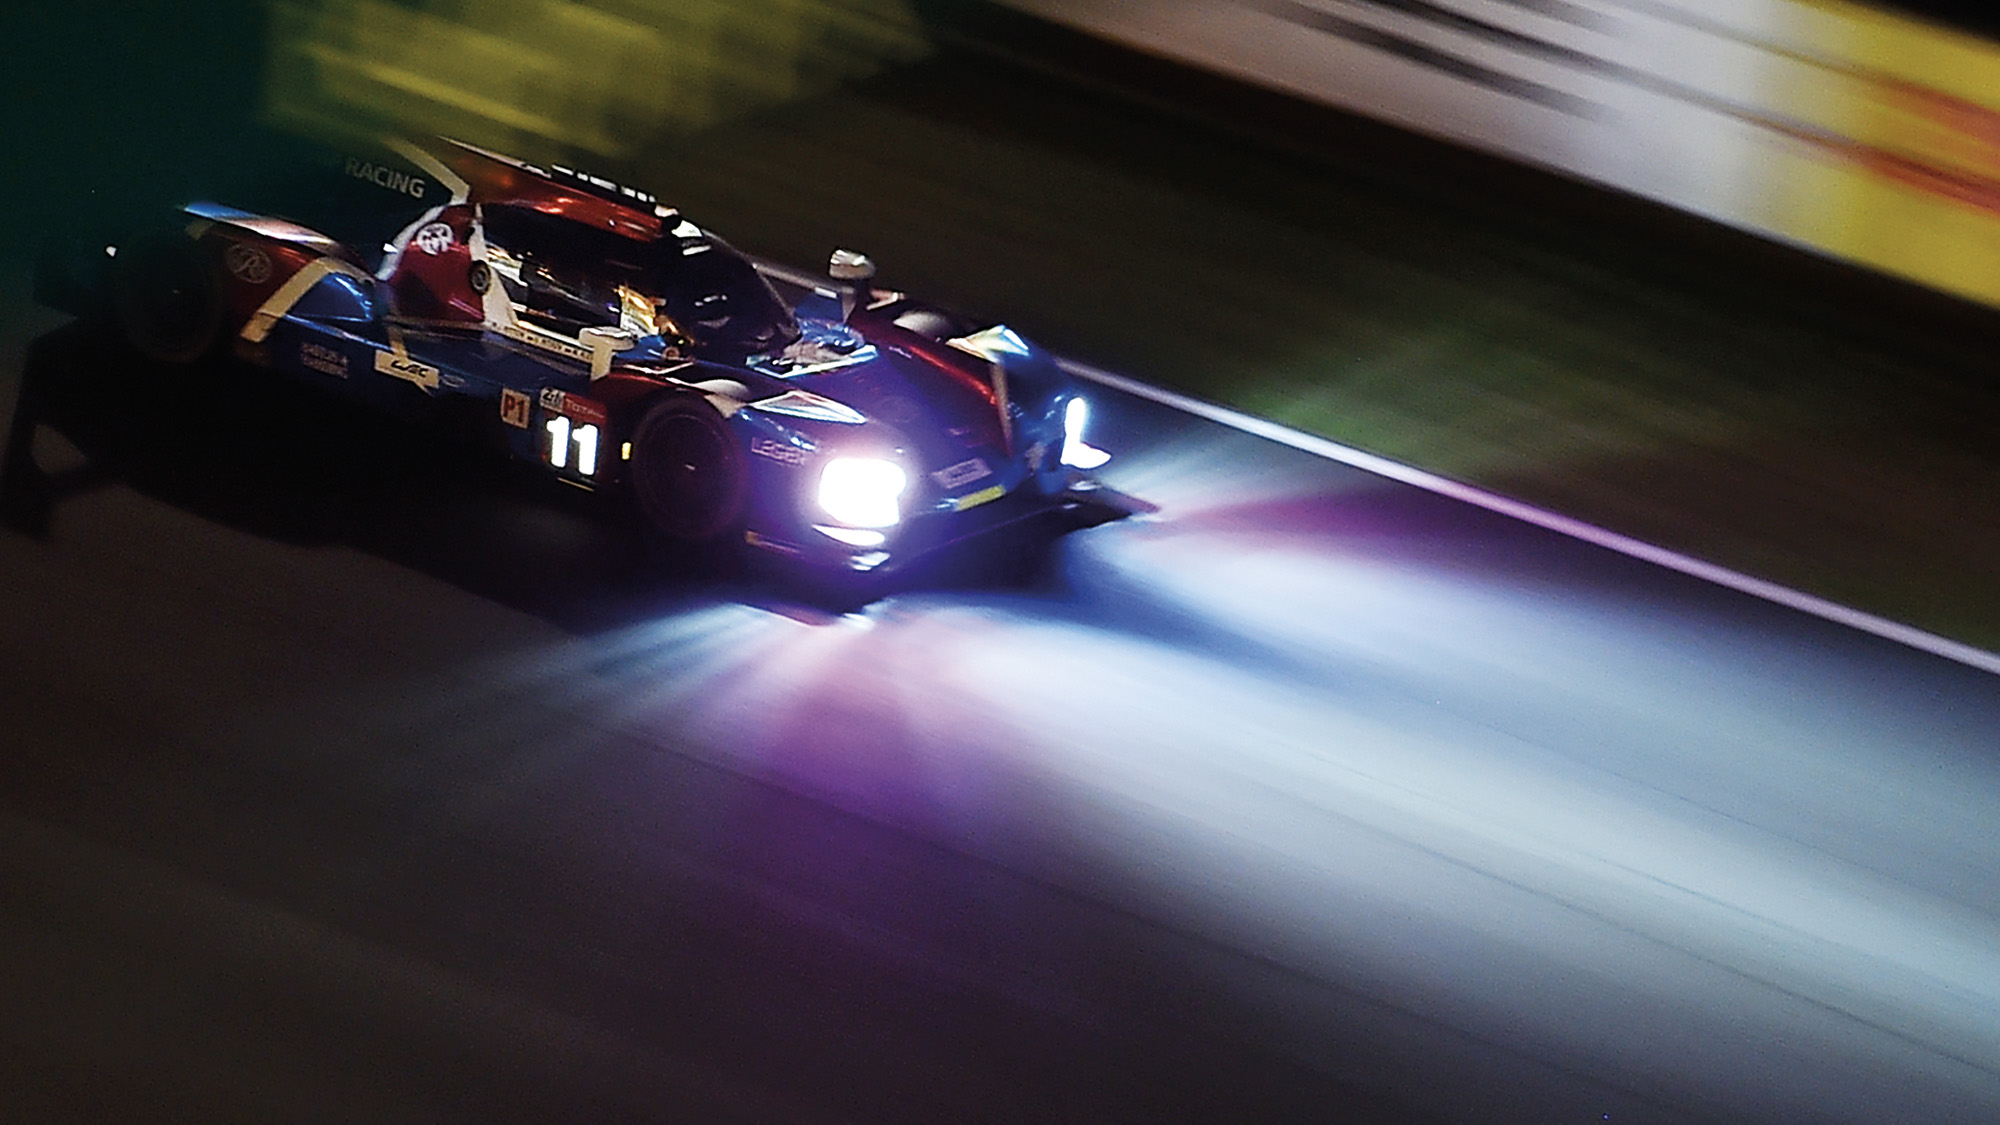 SMP Racing's headlights illuminate the track at night during the Le Mans 24 Hours